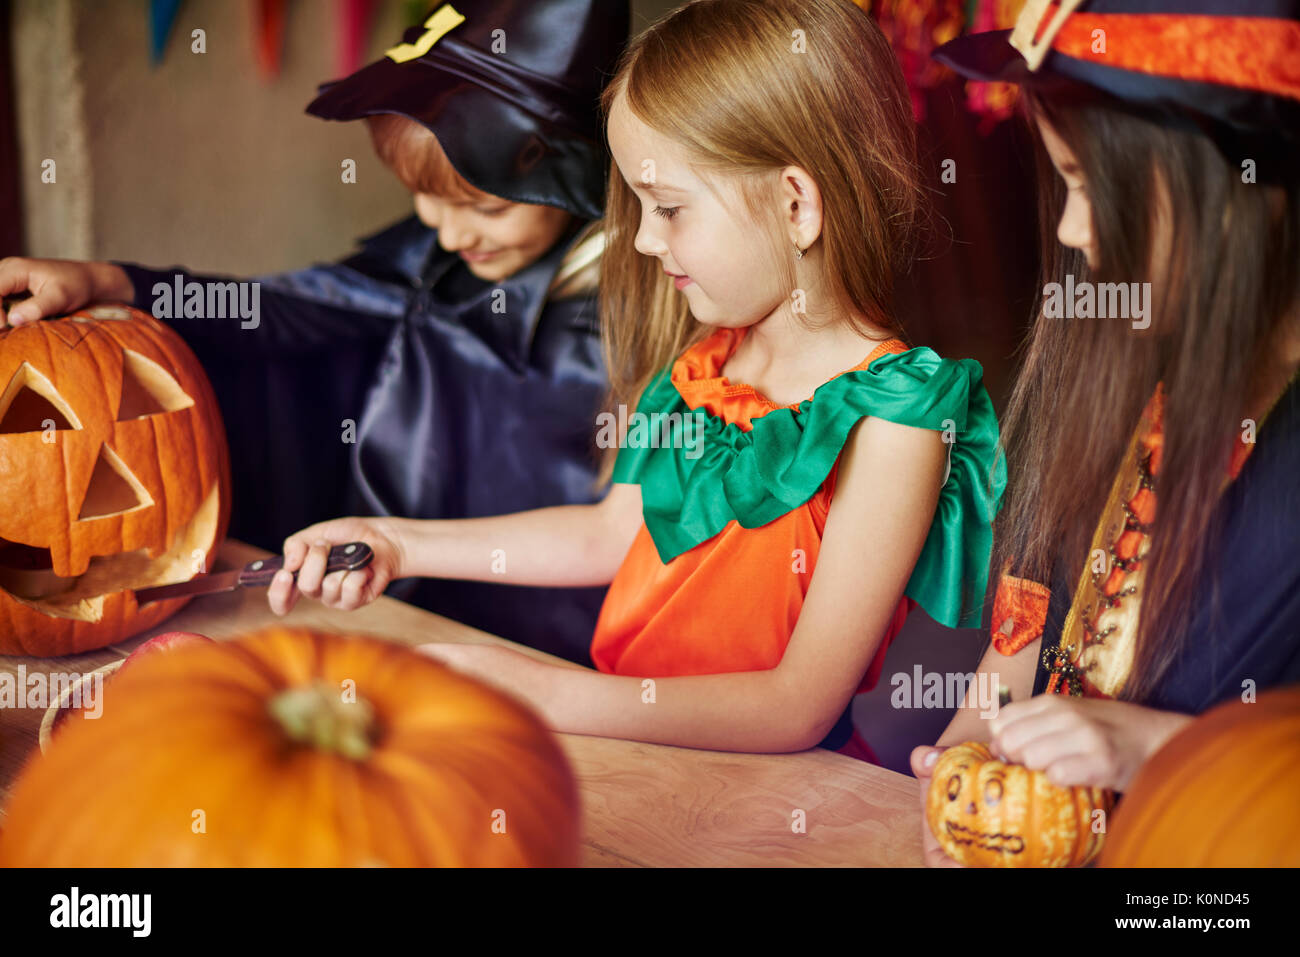 Focus children carving some shapes on the pumpkin - Stock Image